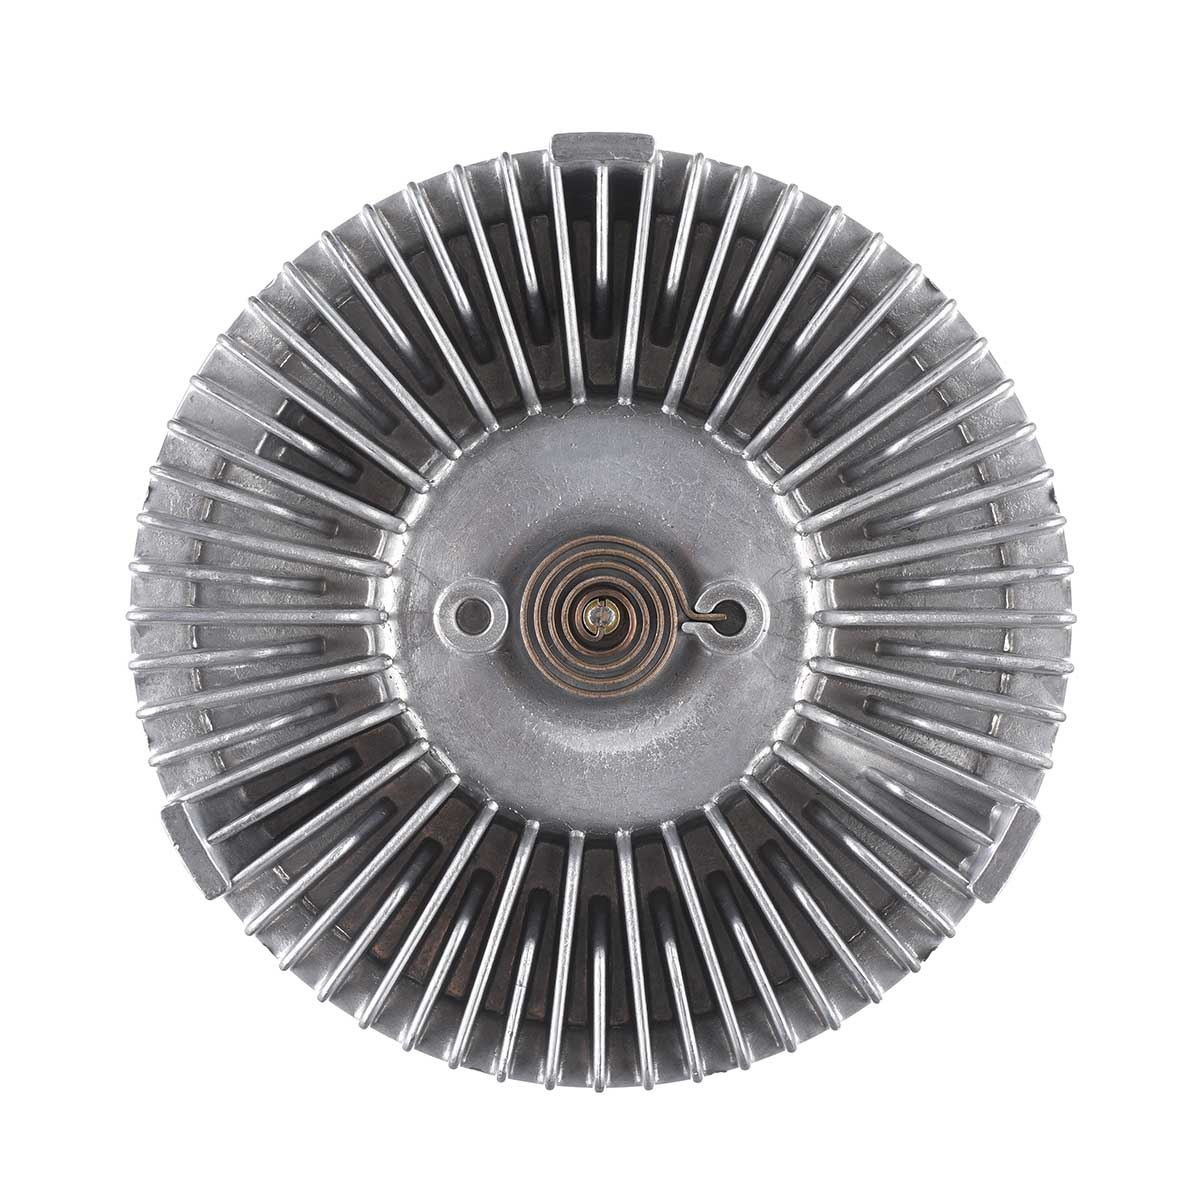 medium resolution of cooling fan clutch for ford explorer sport trac mercury mountaineer 2001 2005 lincoln aviator 4 0l 4 6l ccw 4l2z8a616aa 2776 in fans kits from automobiles